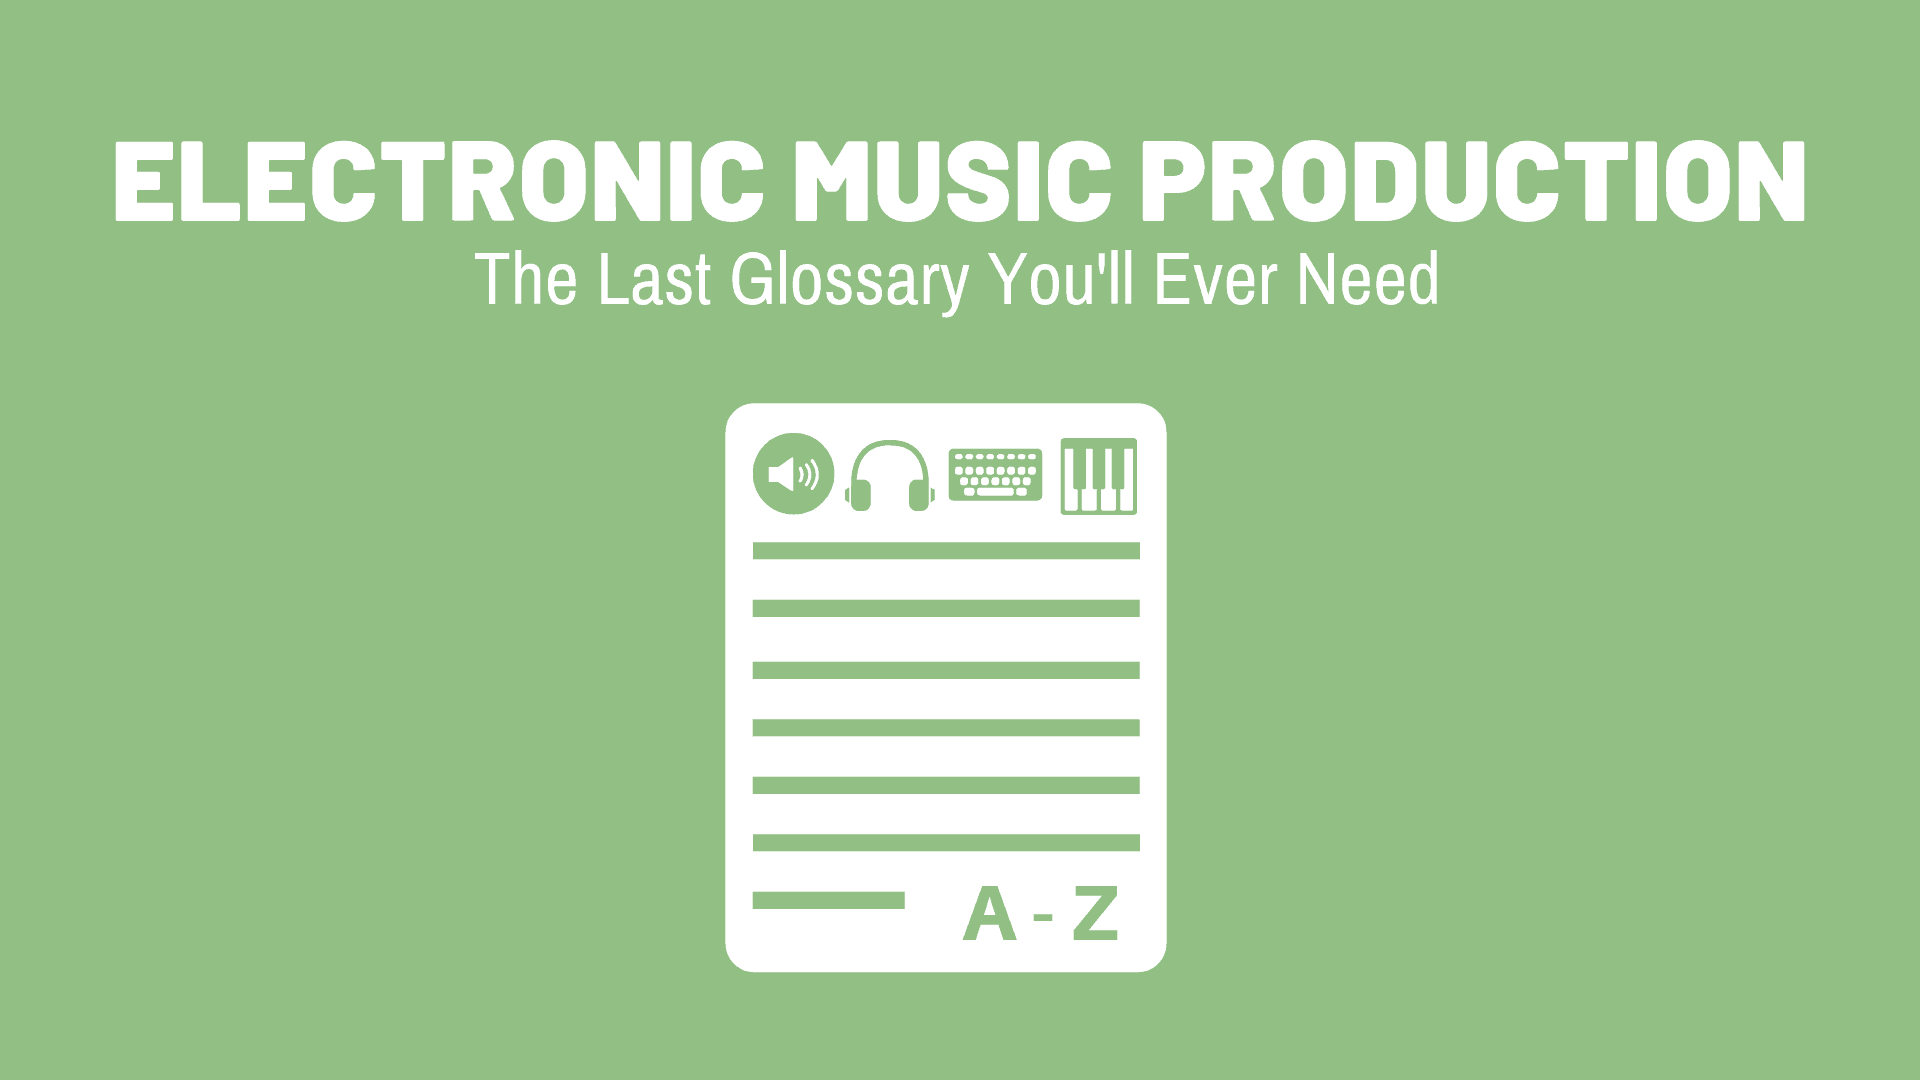 Electronic Music Production Terms: The Last Glossary You'll